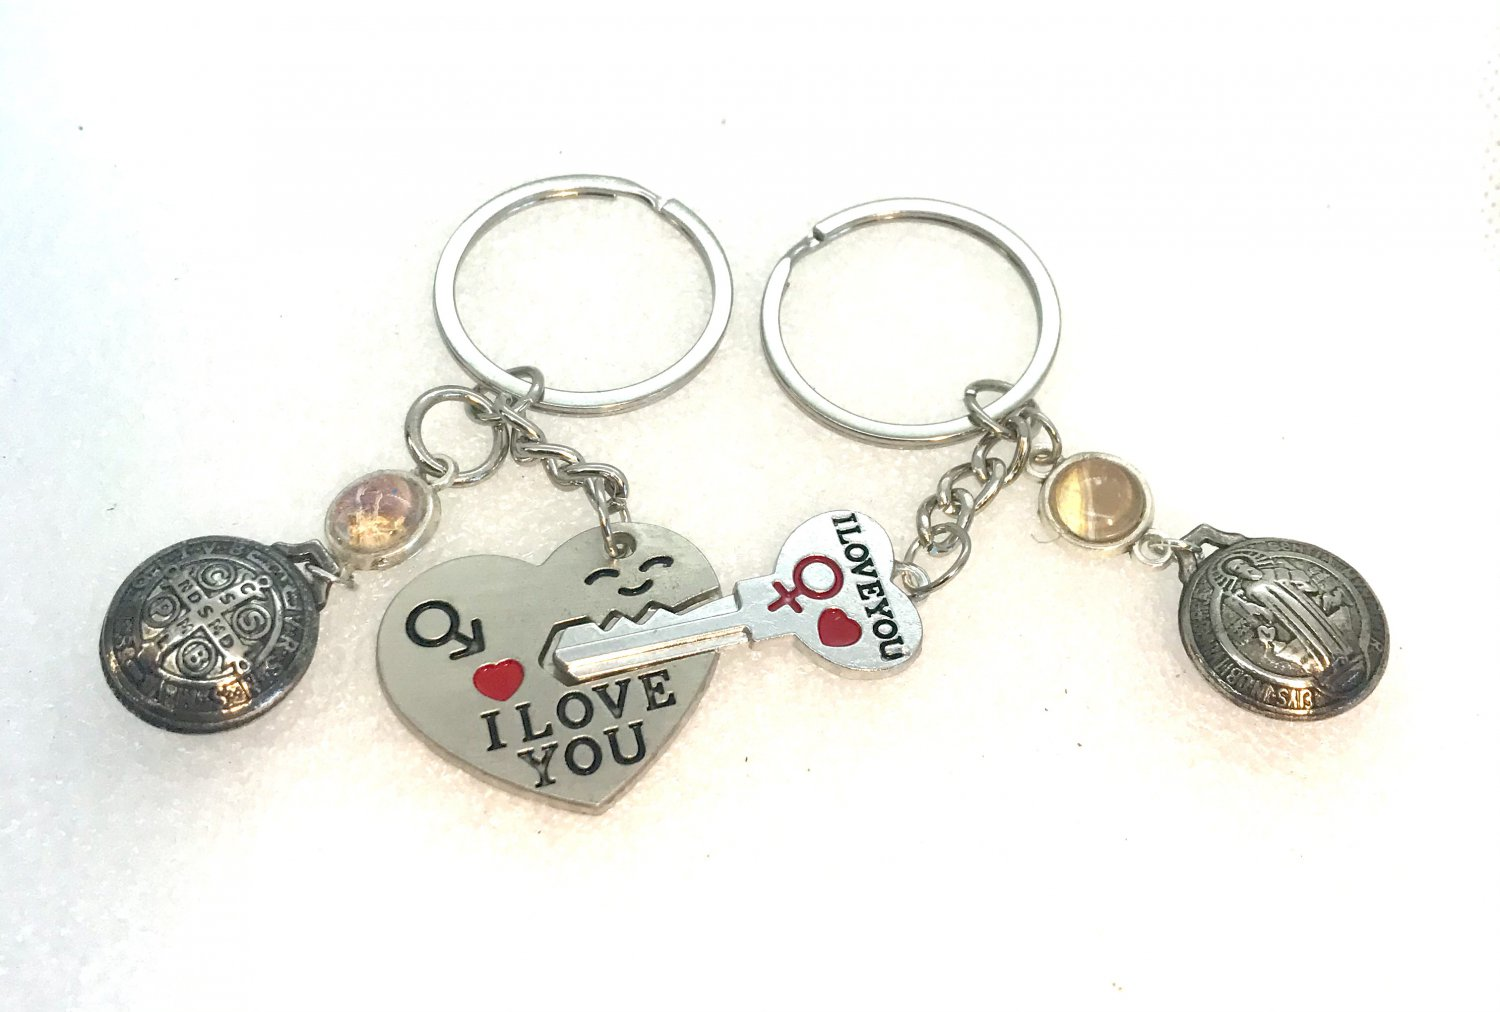 Handmade pair of Keychains I love you with charms